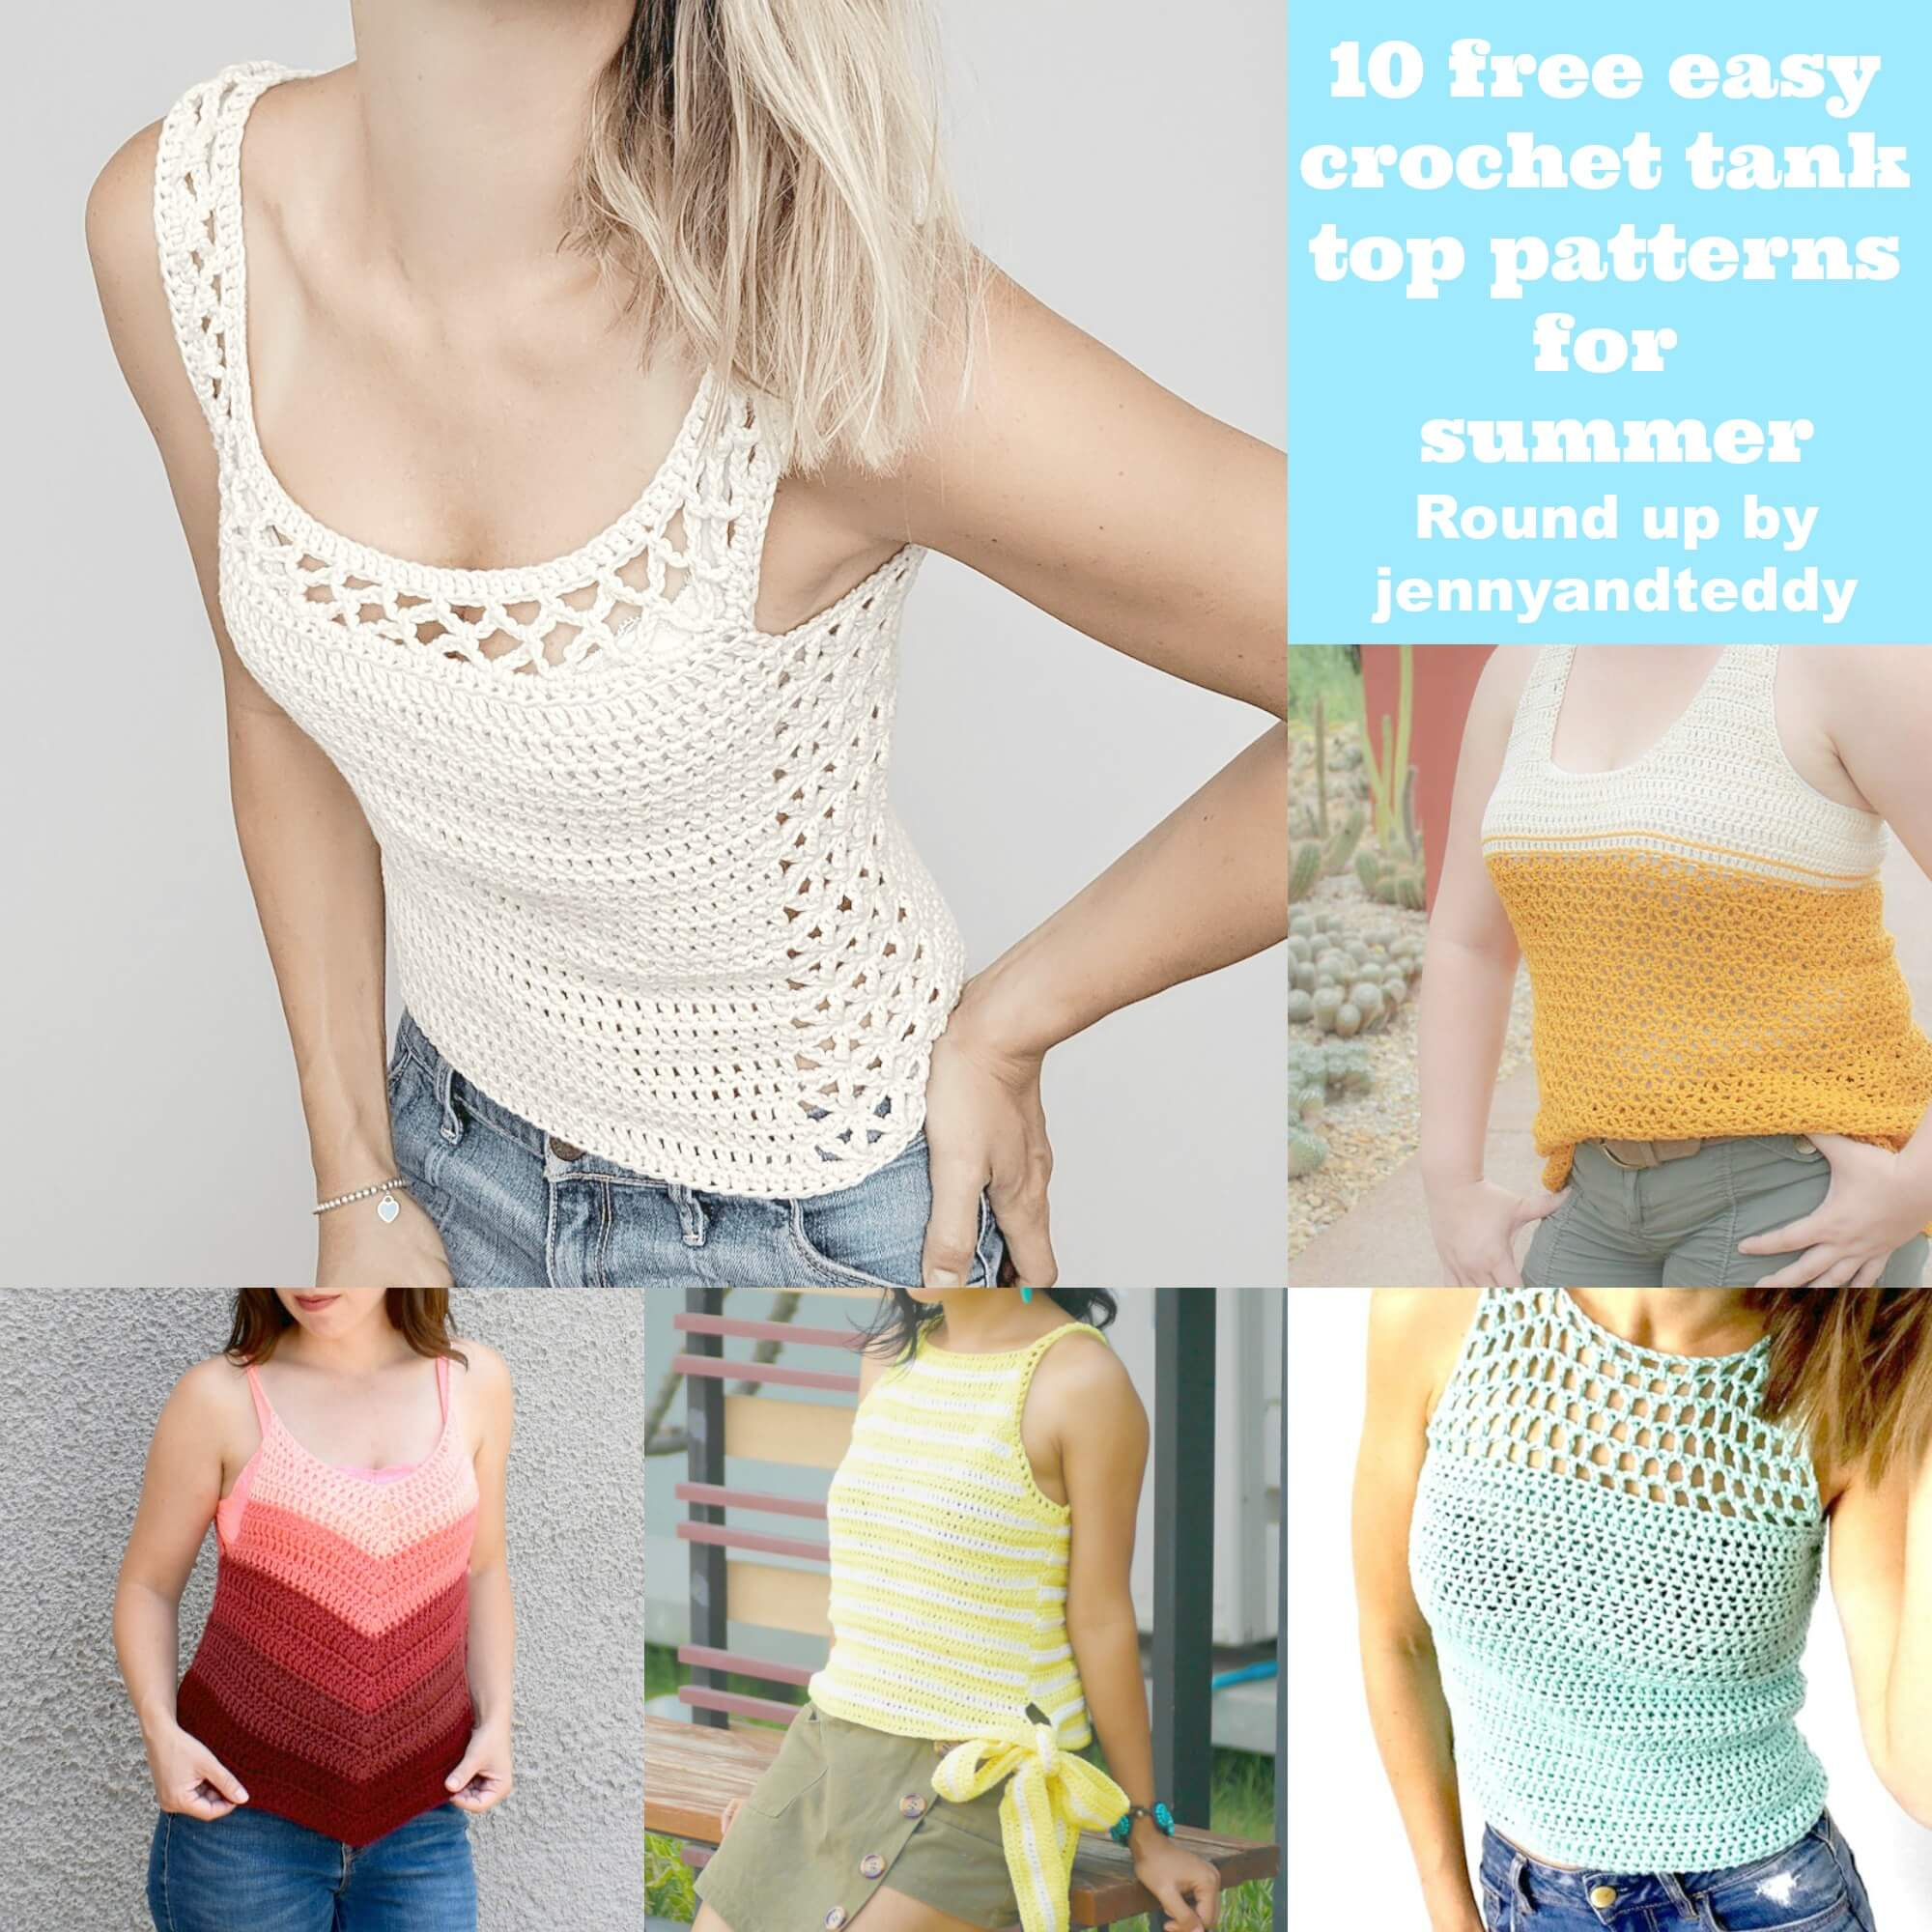 Knitted Tank Top Patterns 10 Free Easy Crochet Tank Top Patterns For Summer